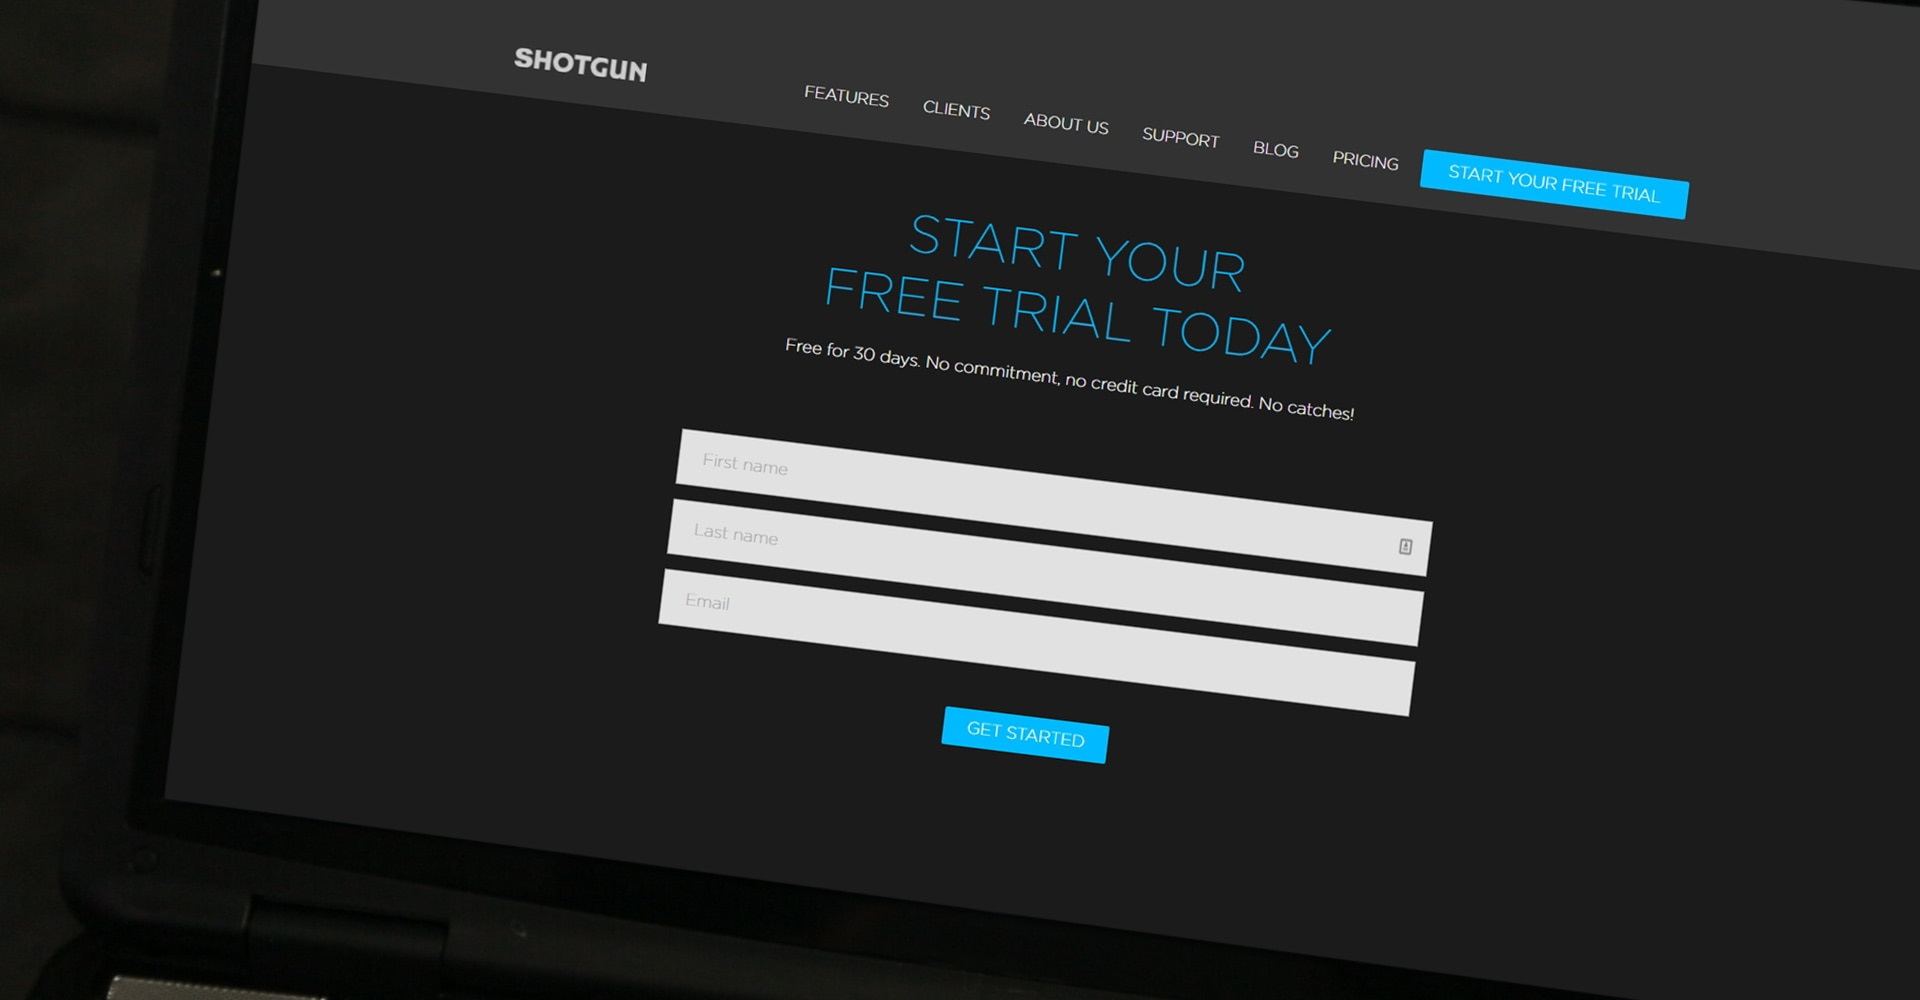 Shotgun software free trial